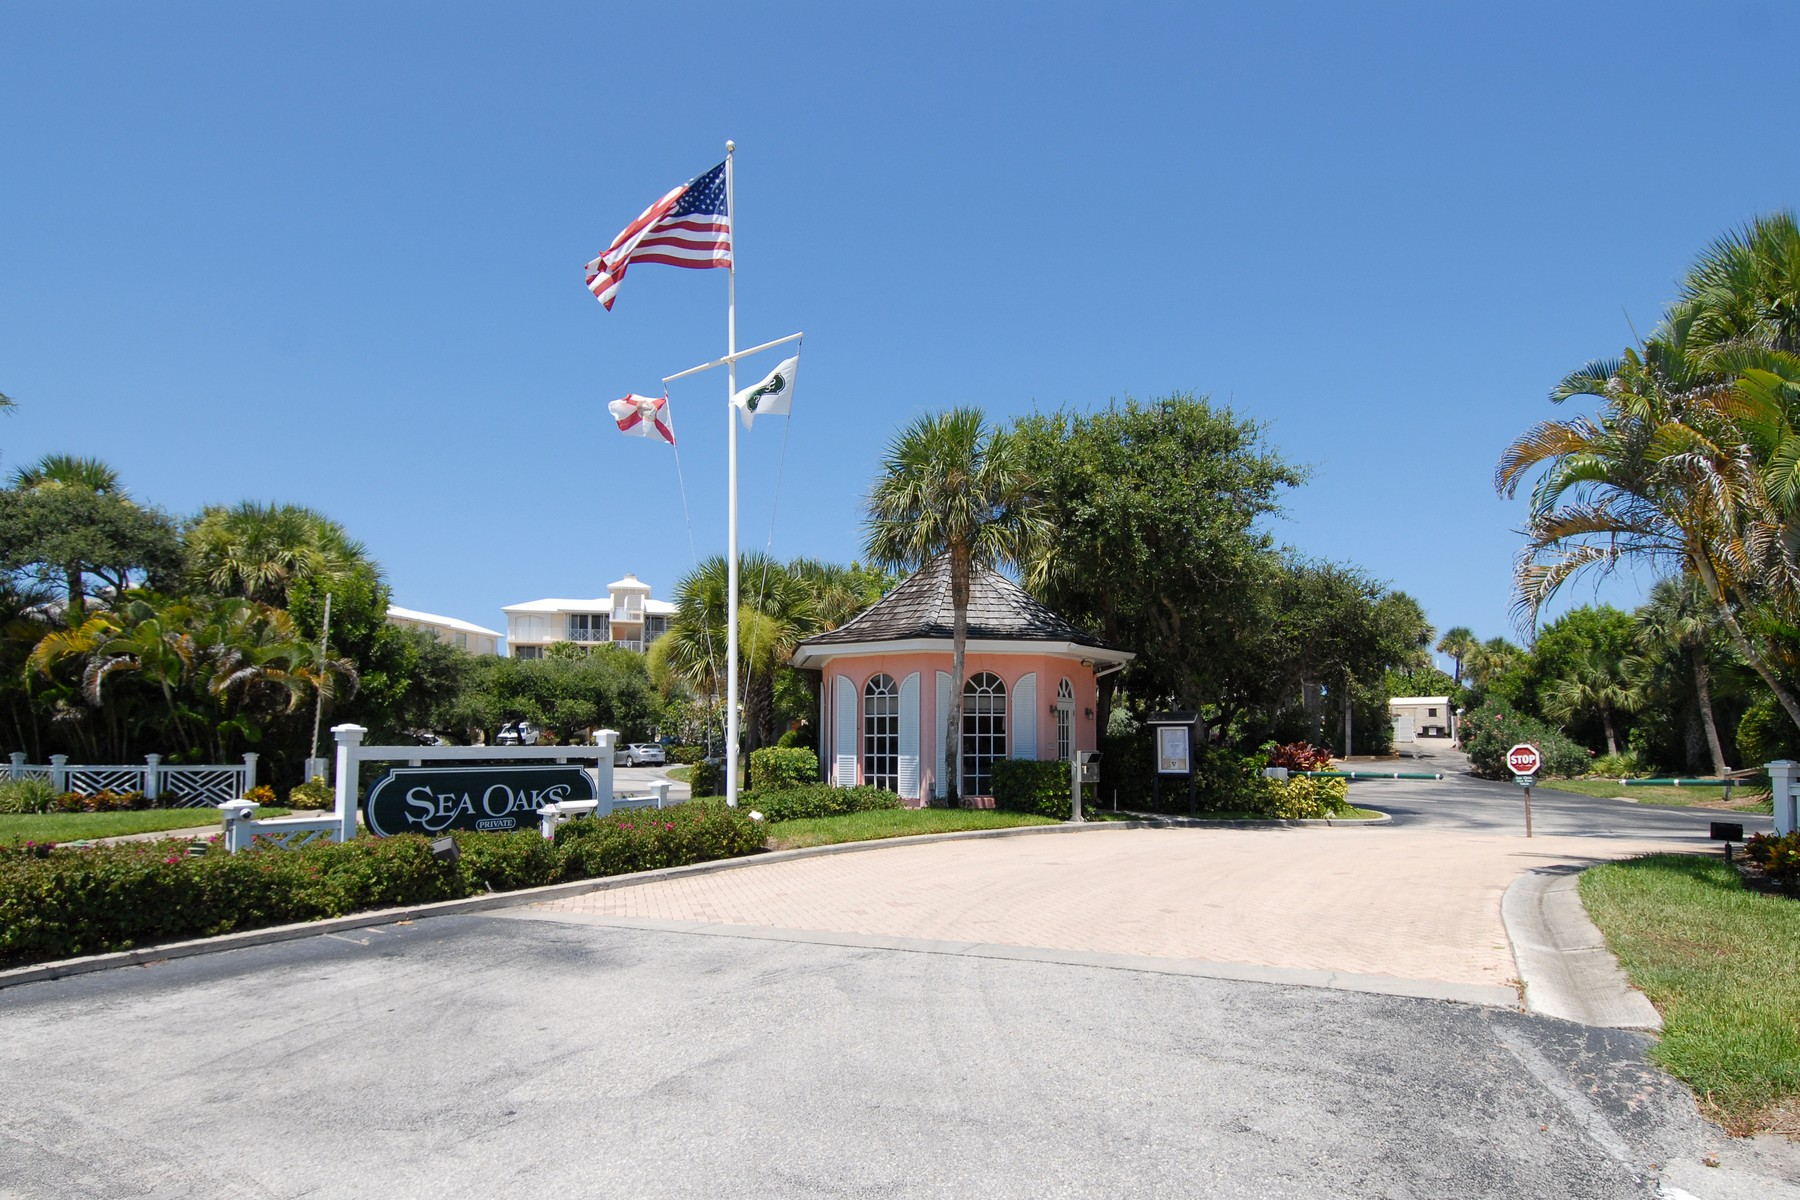 Additional photo for property listing at Stunning Oceanfront Four Bedroom Top Floor Condo 8890 Sea Oaks Way #105 Vero Beach, Florida 32963 United States